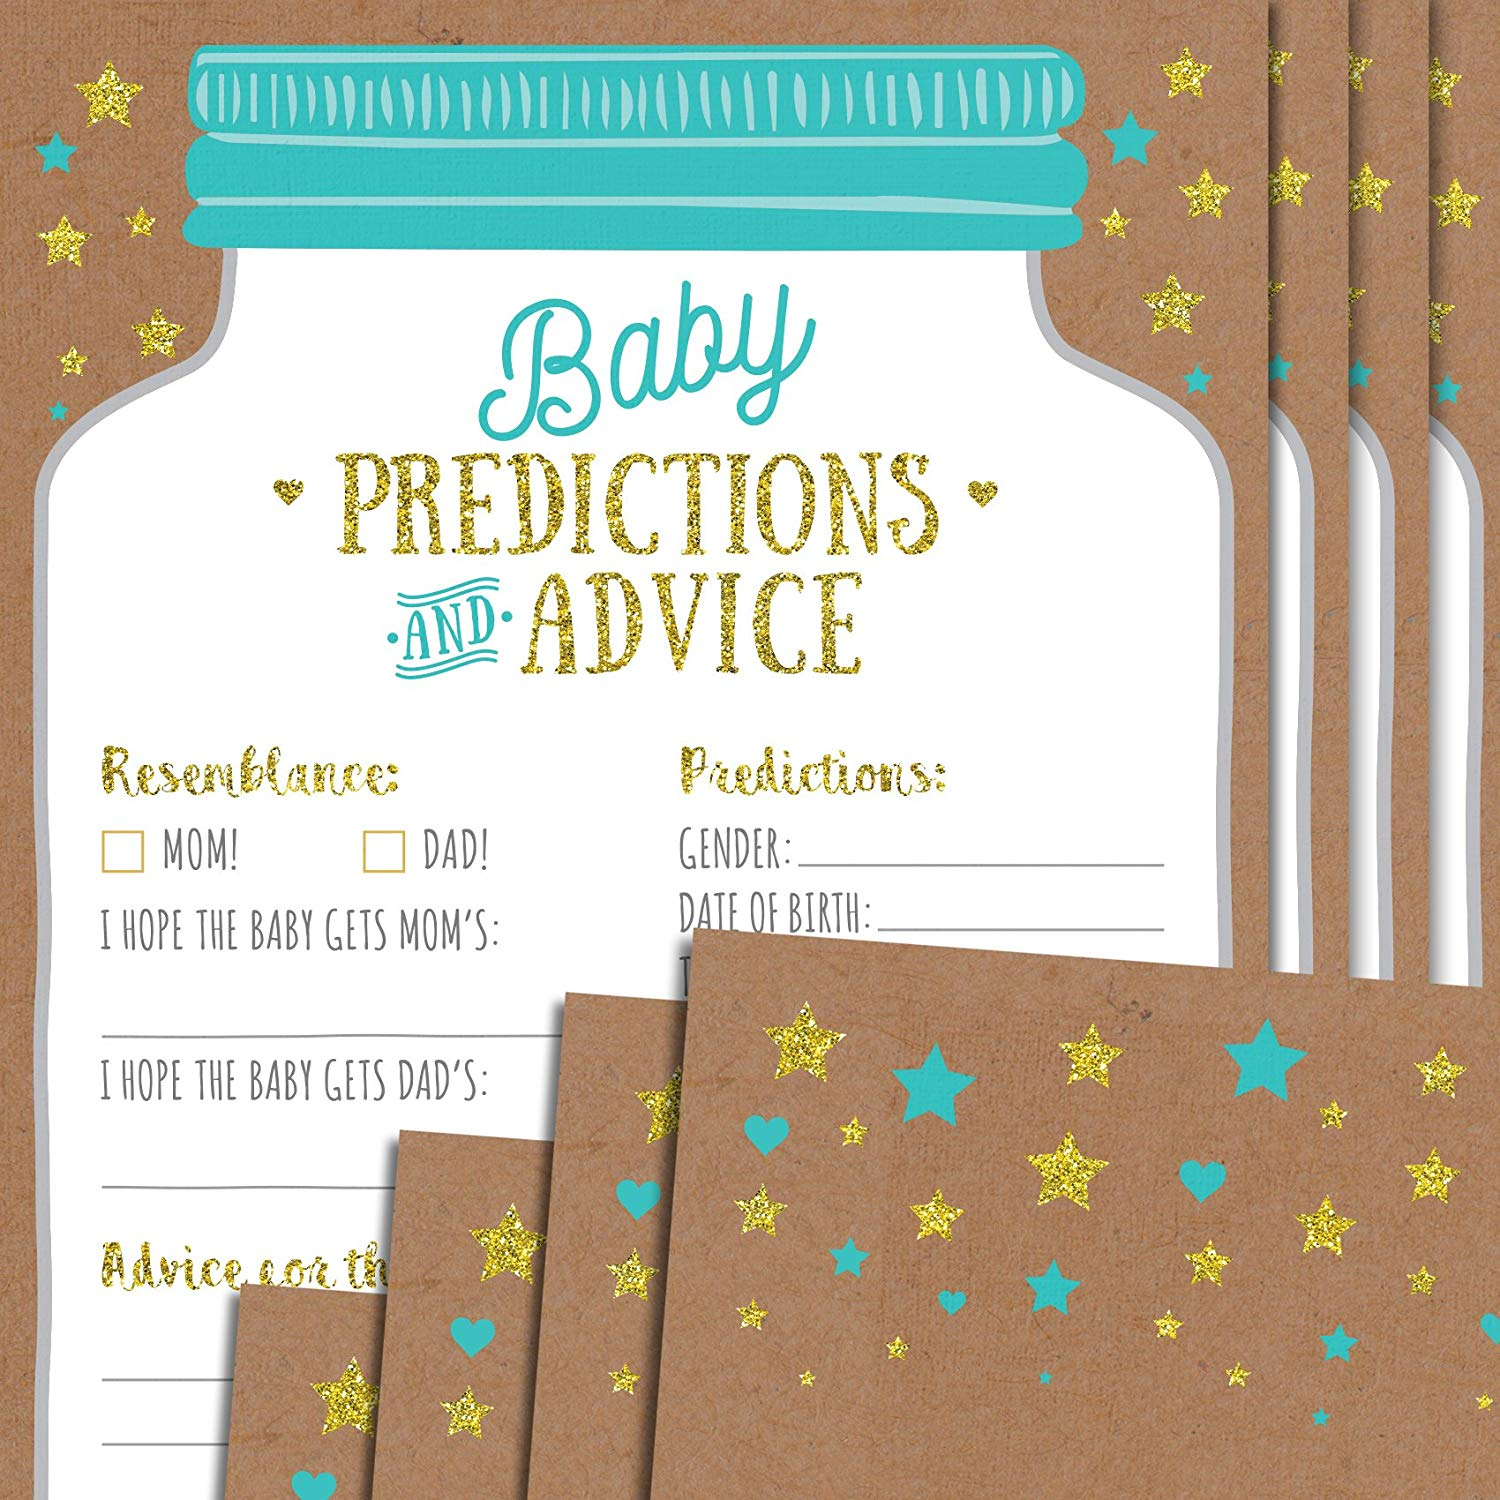 Baby Shower Prediction and Advice Cards - Gender Neutral Boy or Girl Baby Shower Games Baby Shower Favors